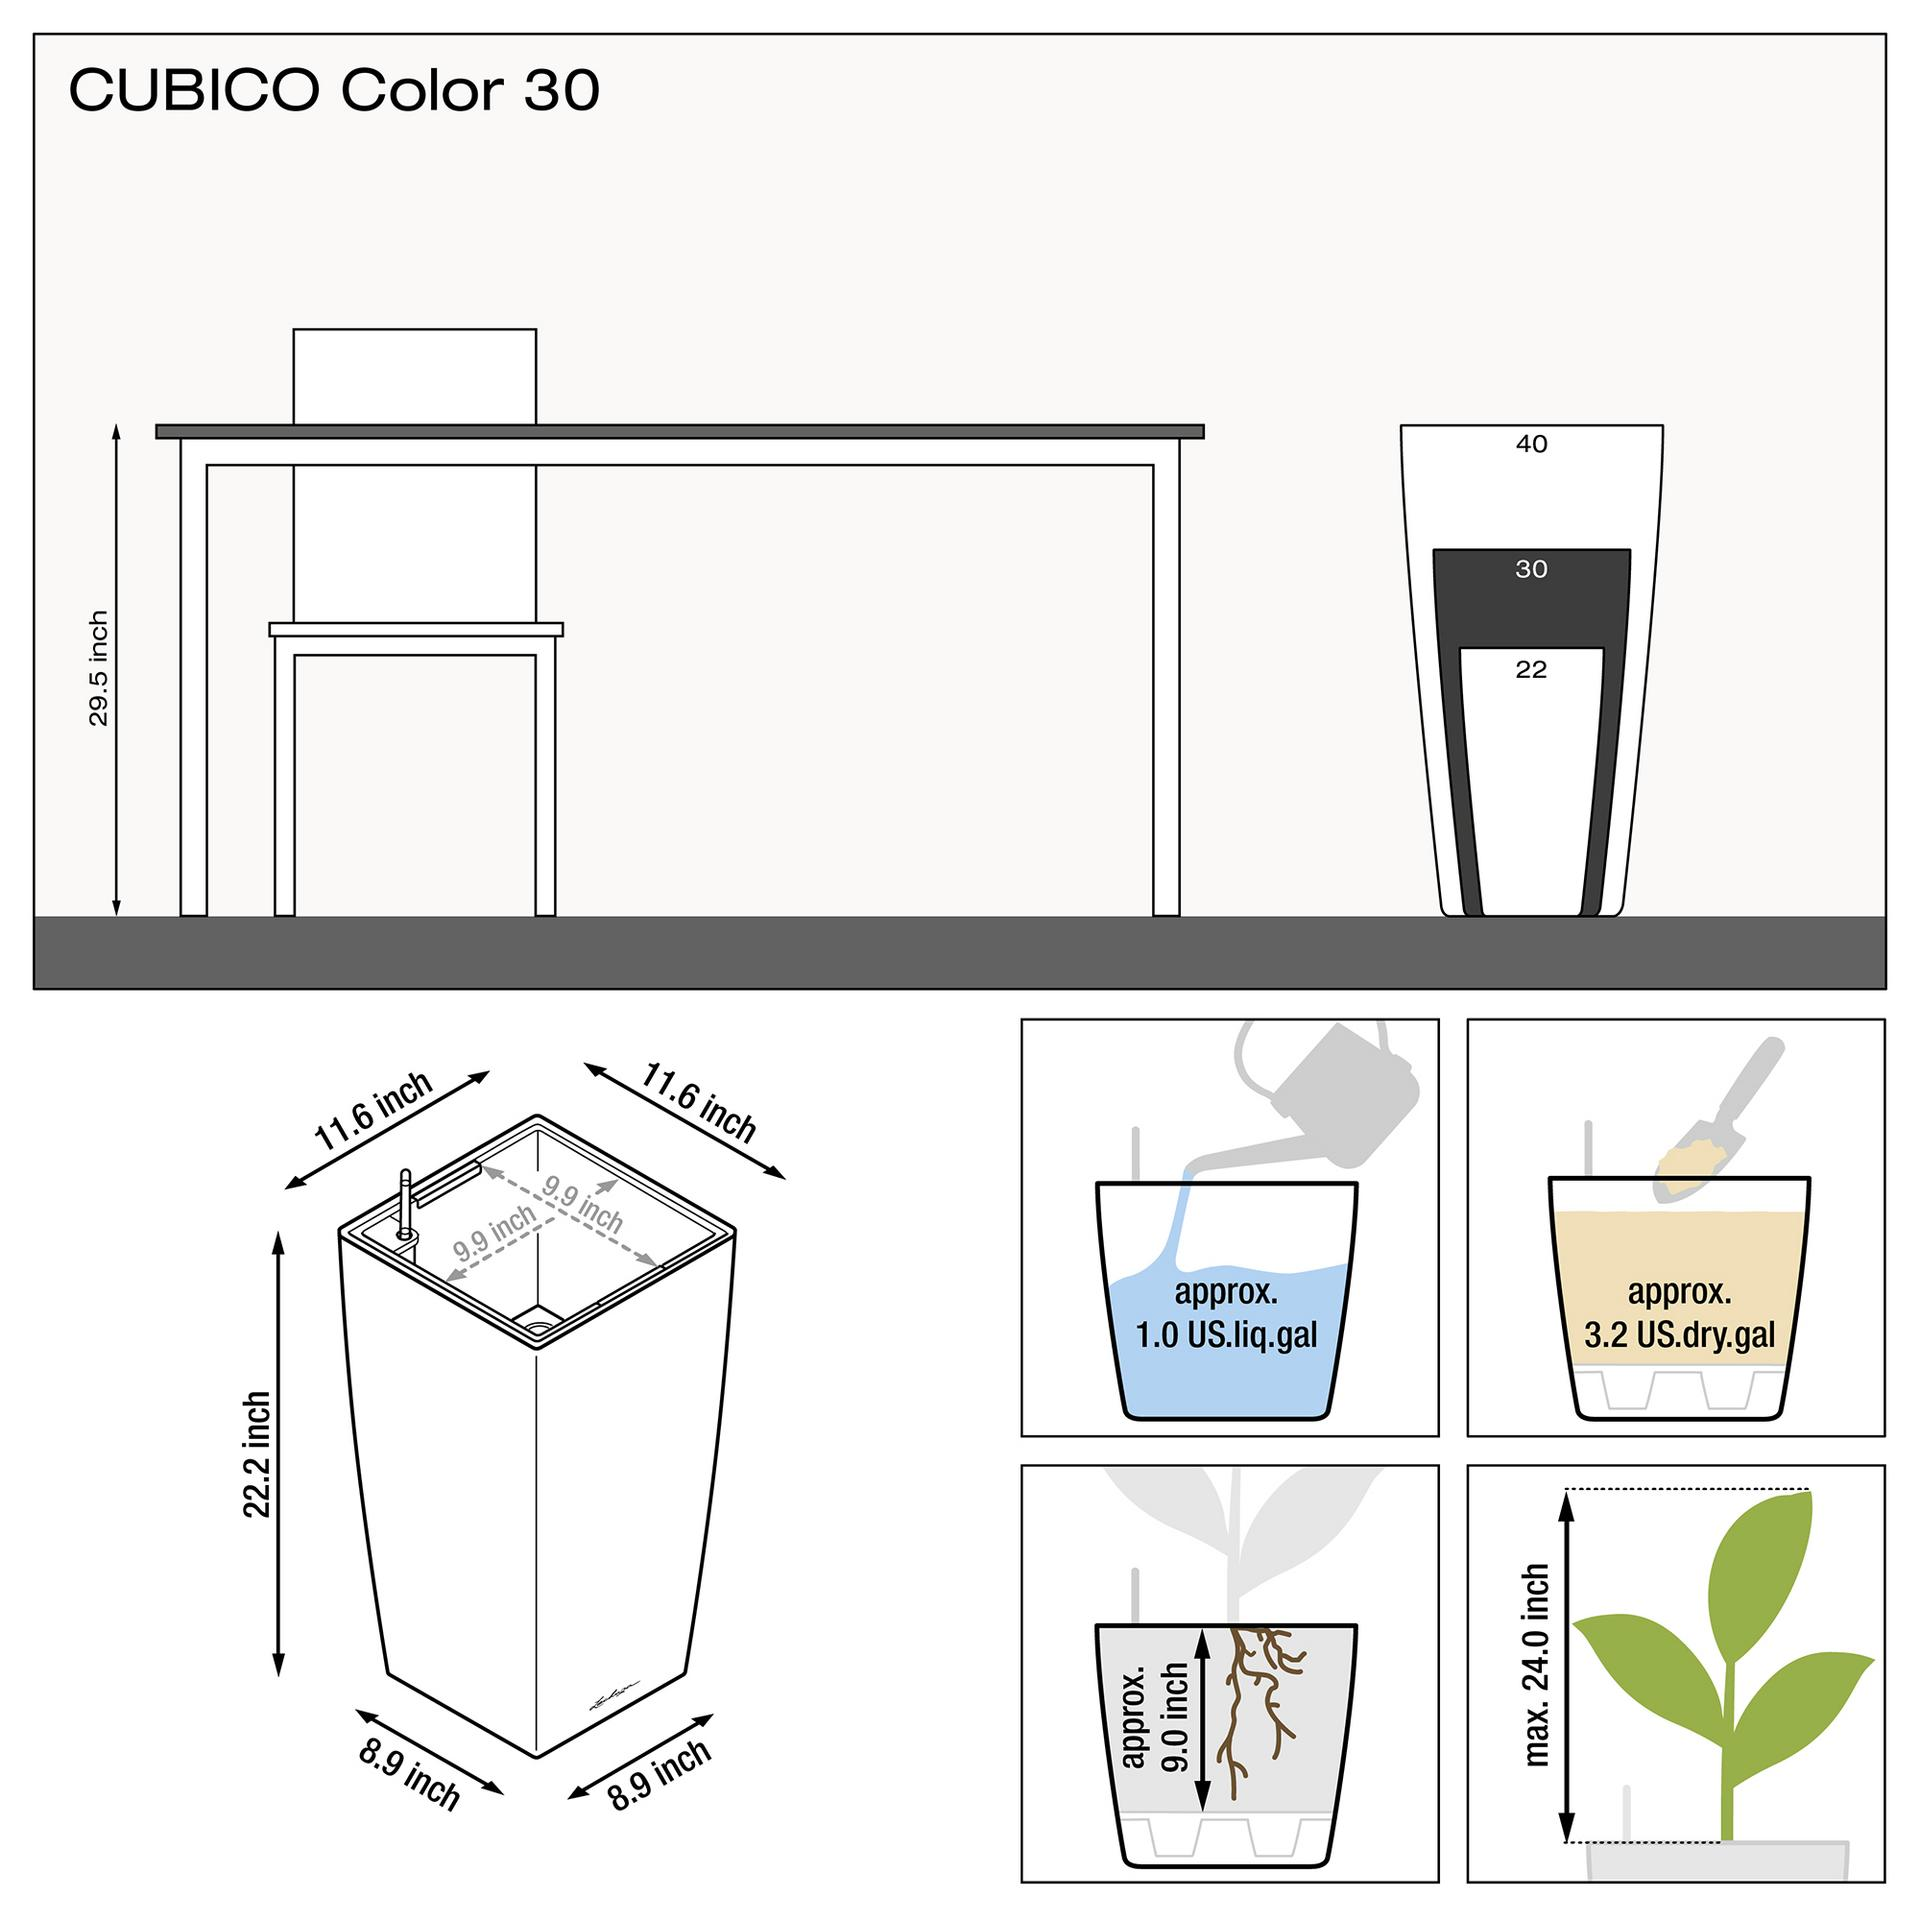 le_cubico-color30_product_addi_nz_us